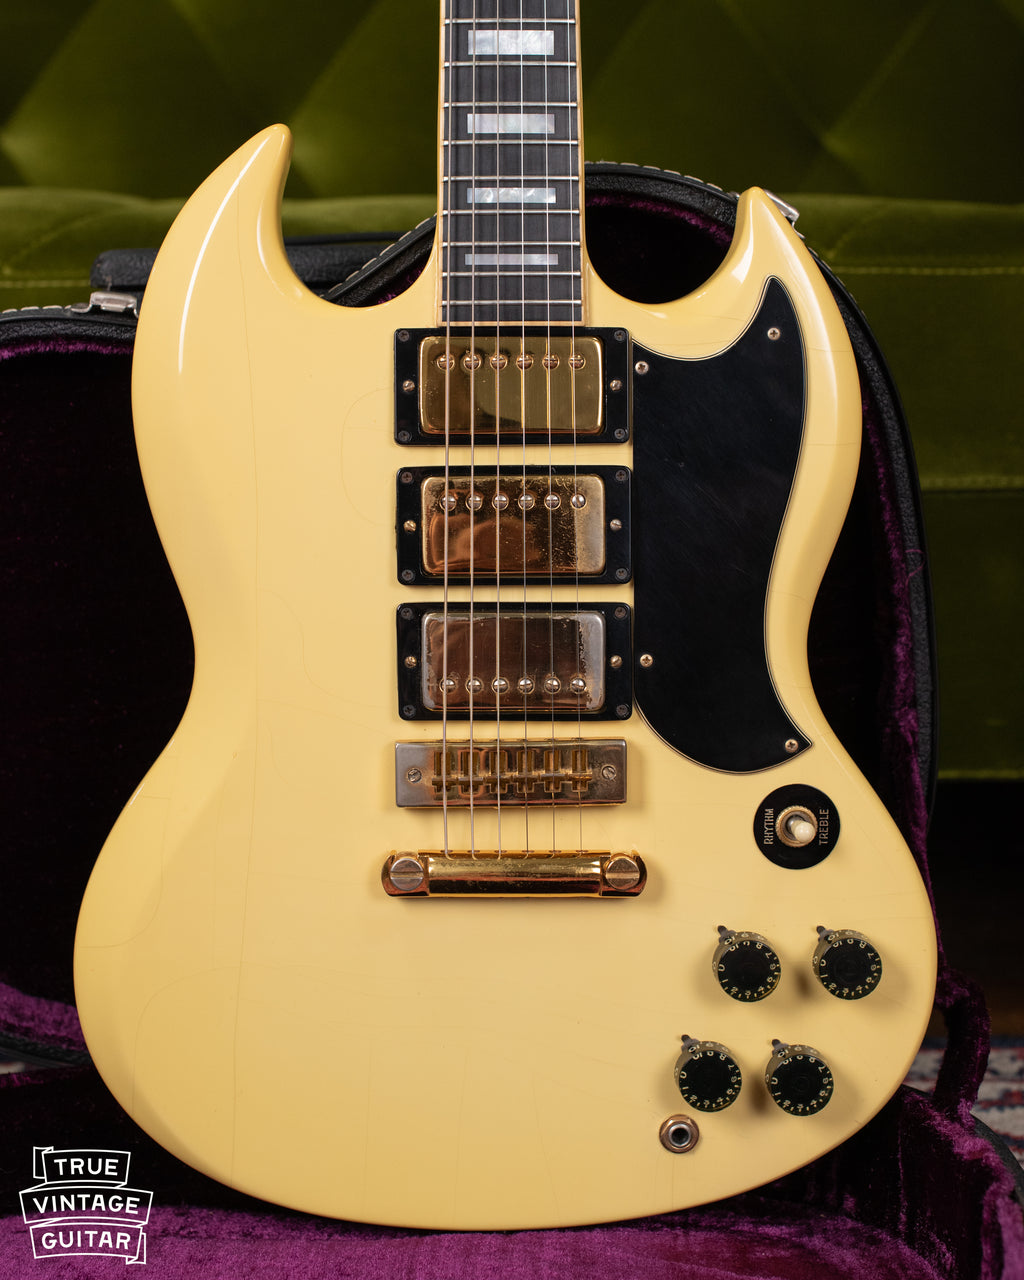 1974 Gibson SG Custom White Guitar